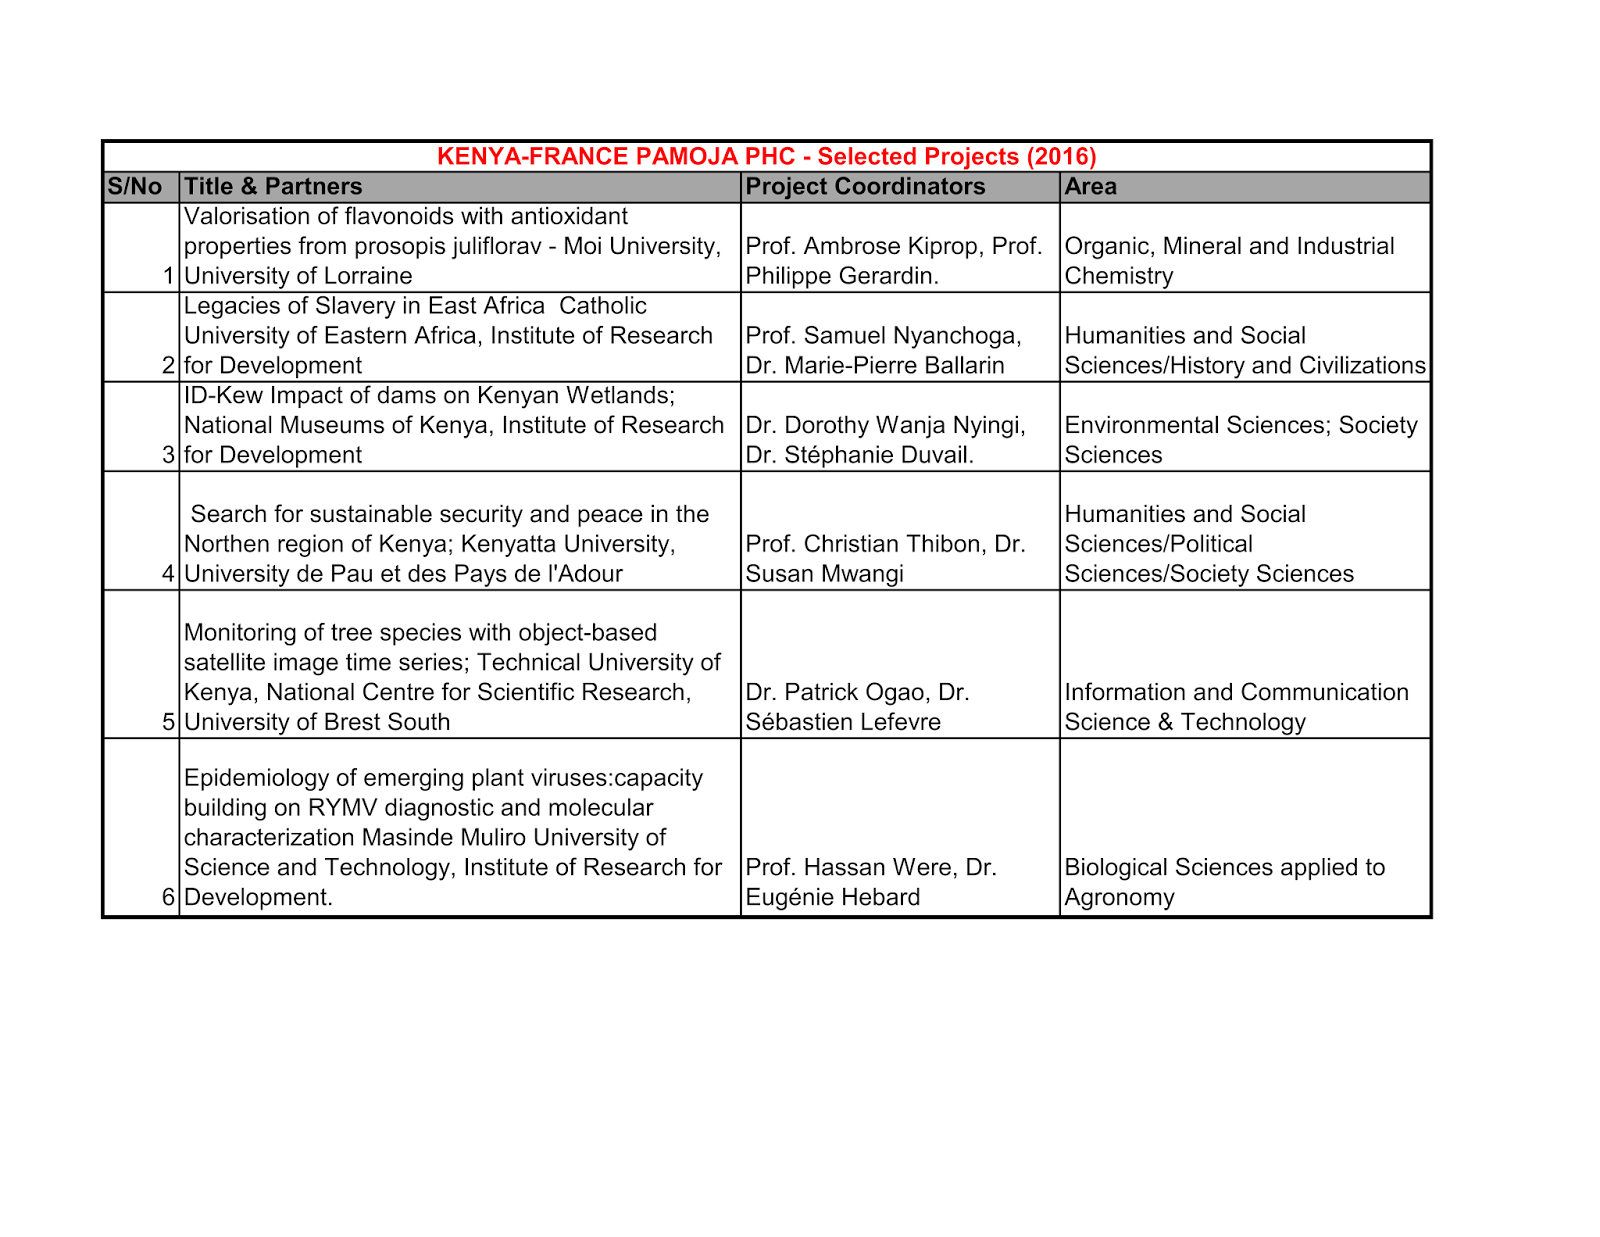 political science research topics list